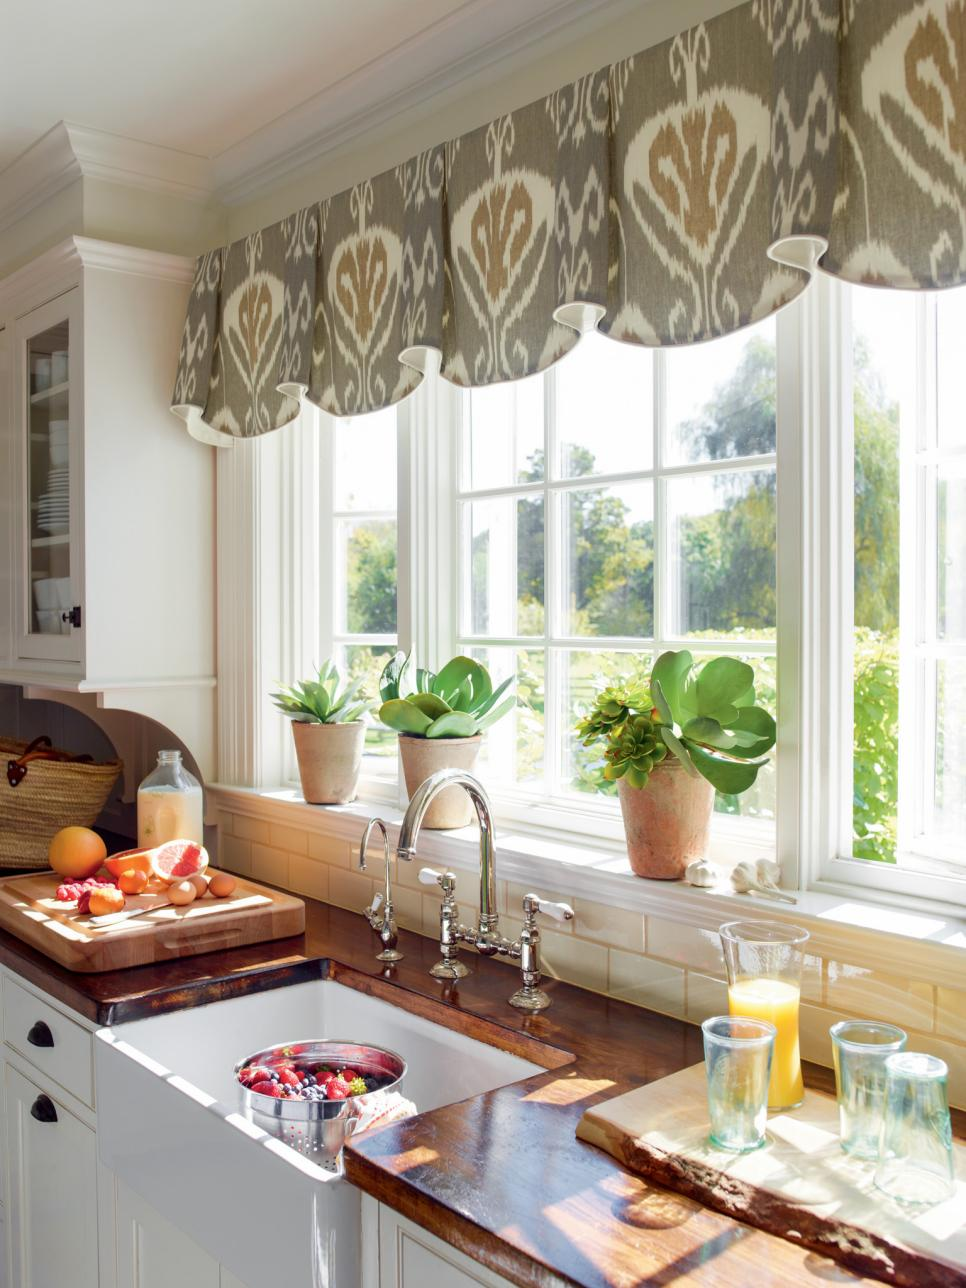 10 Stylish Kitchen Window Treatment Ideas | HGTV